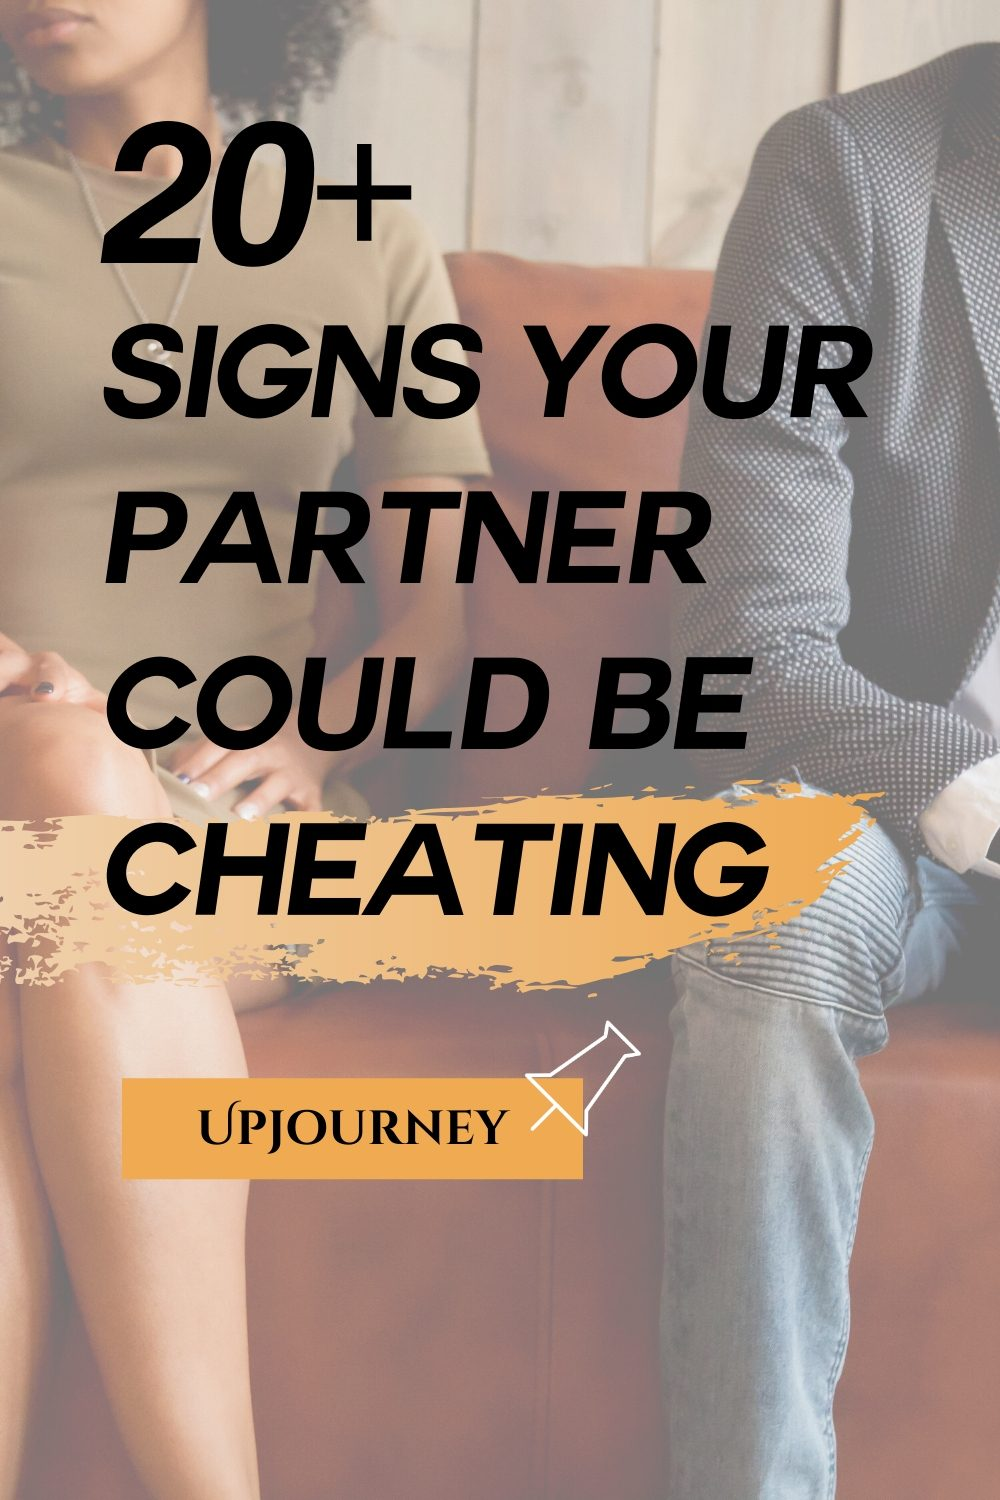 Warning Signs Your Partner Could Be Cheating